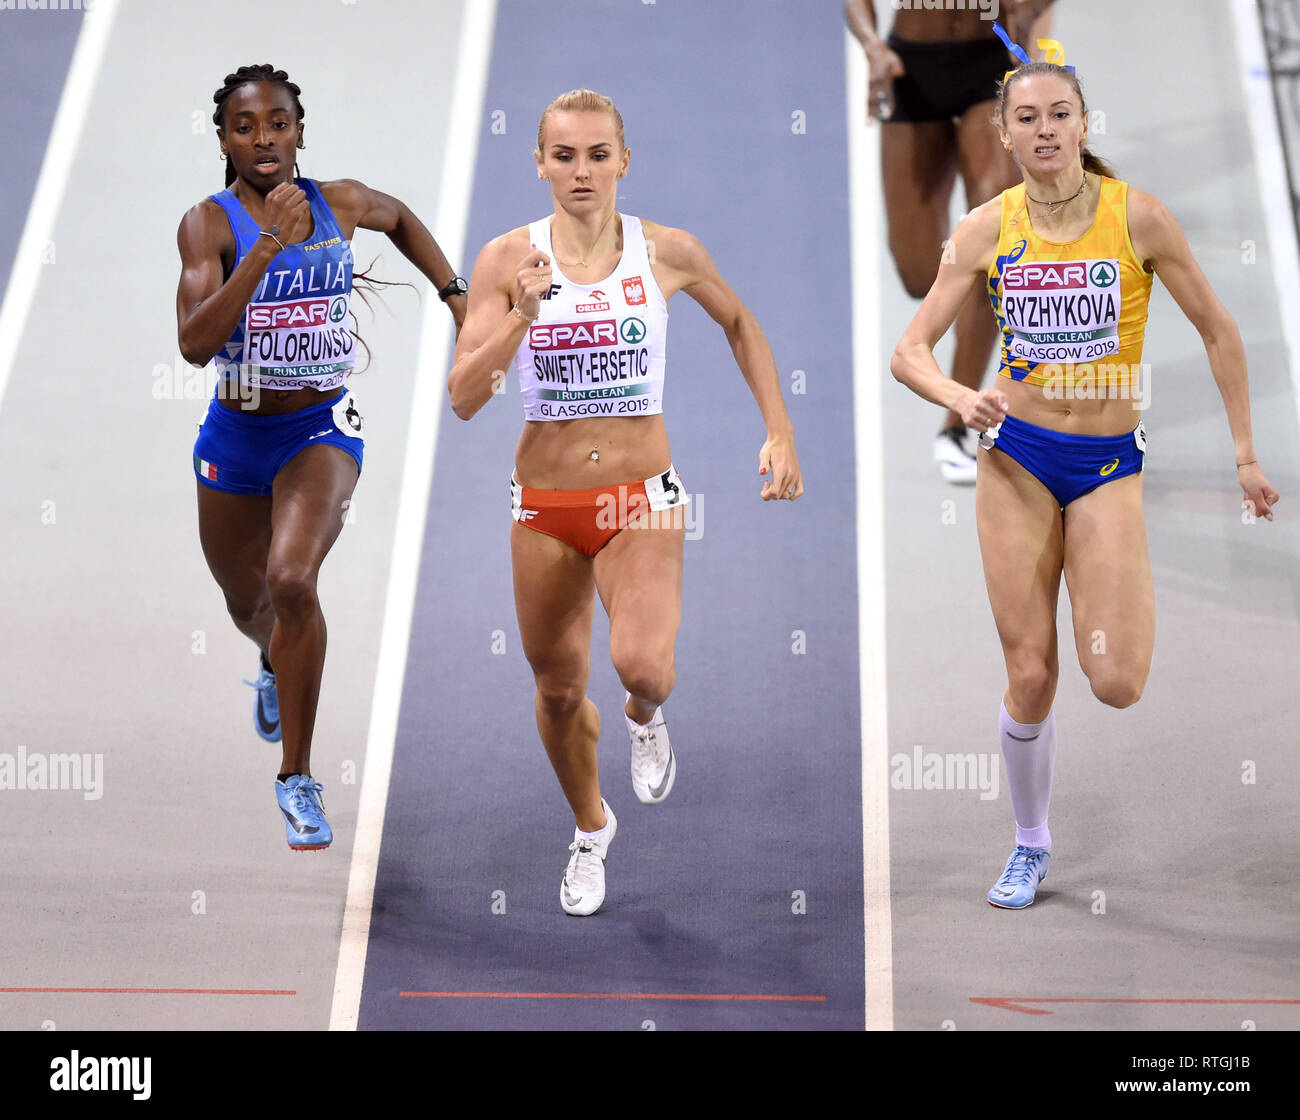 (From left to right) Italy's Ayomide Folorunso, Poland's Justyna Swiety-Ersetic and Ukraine's Anna Ryzhykova competing in the Women's 400m heat 4 during day one of the European Indoor Athletics Championships at the Emirates Arena, Glasgow. - Stock Image